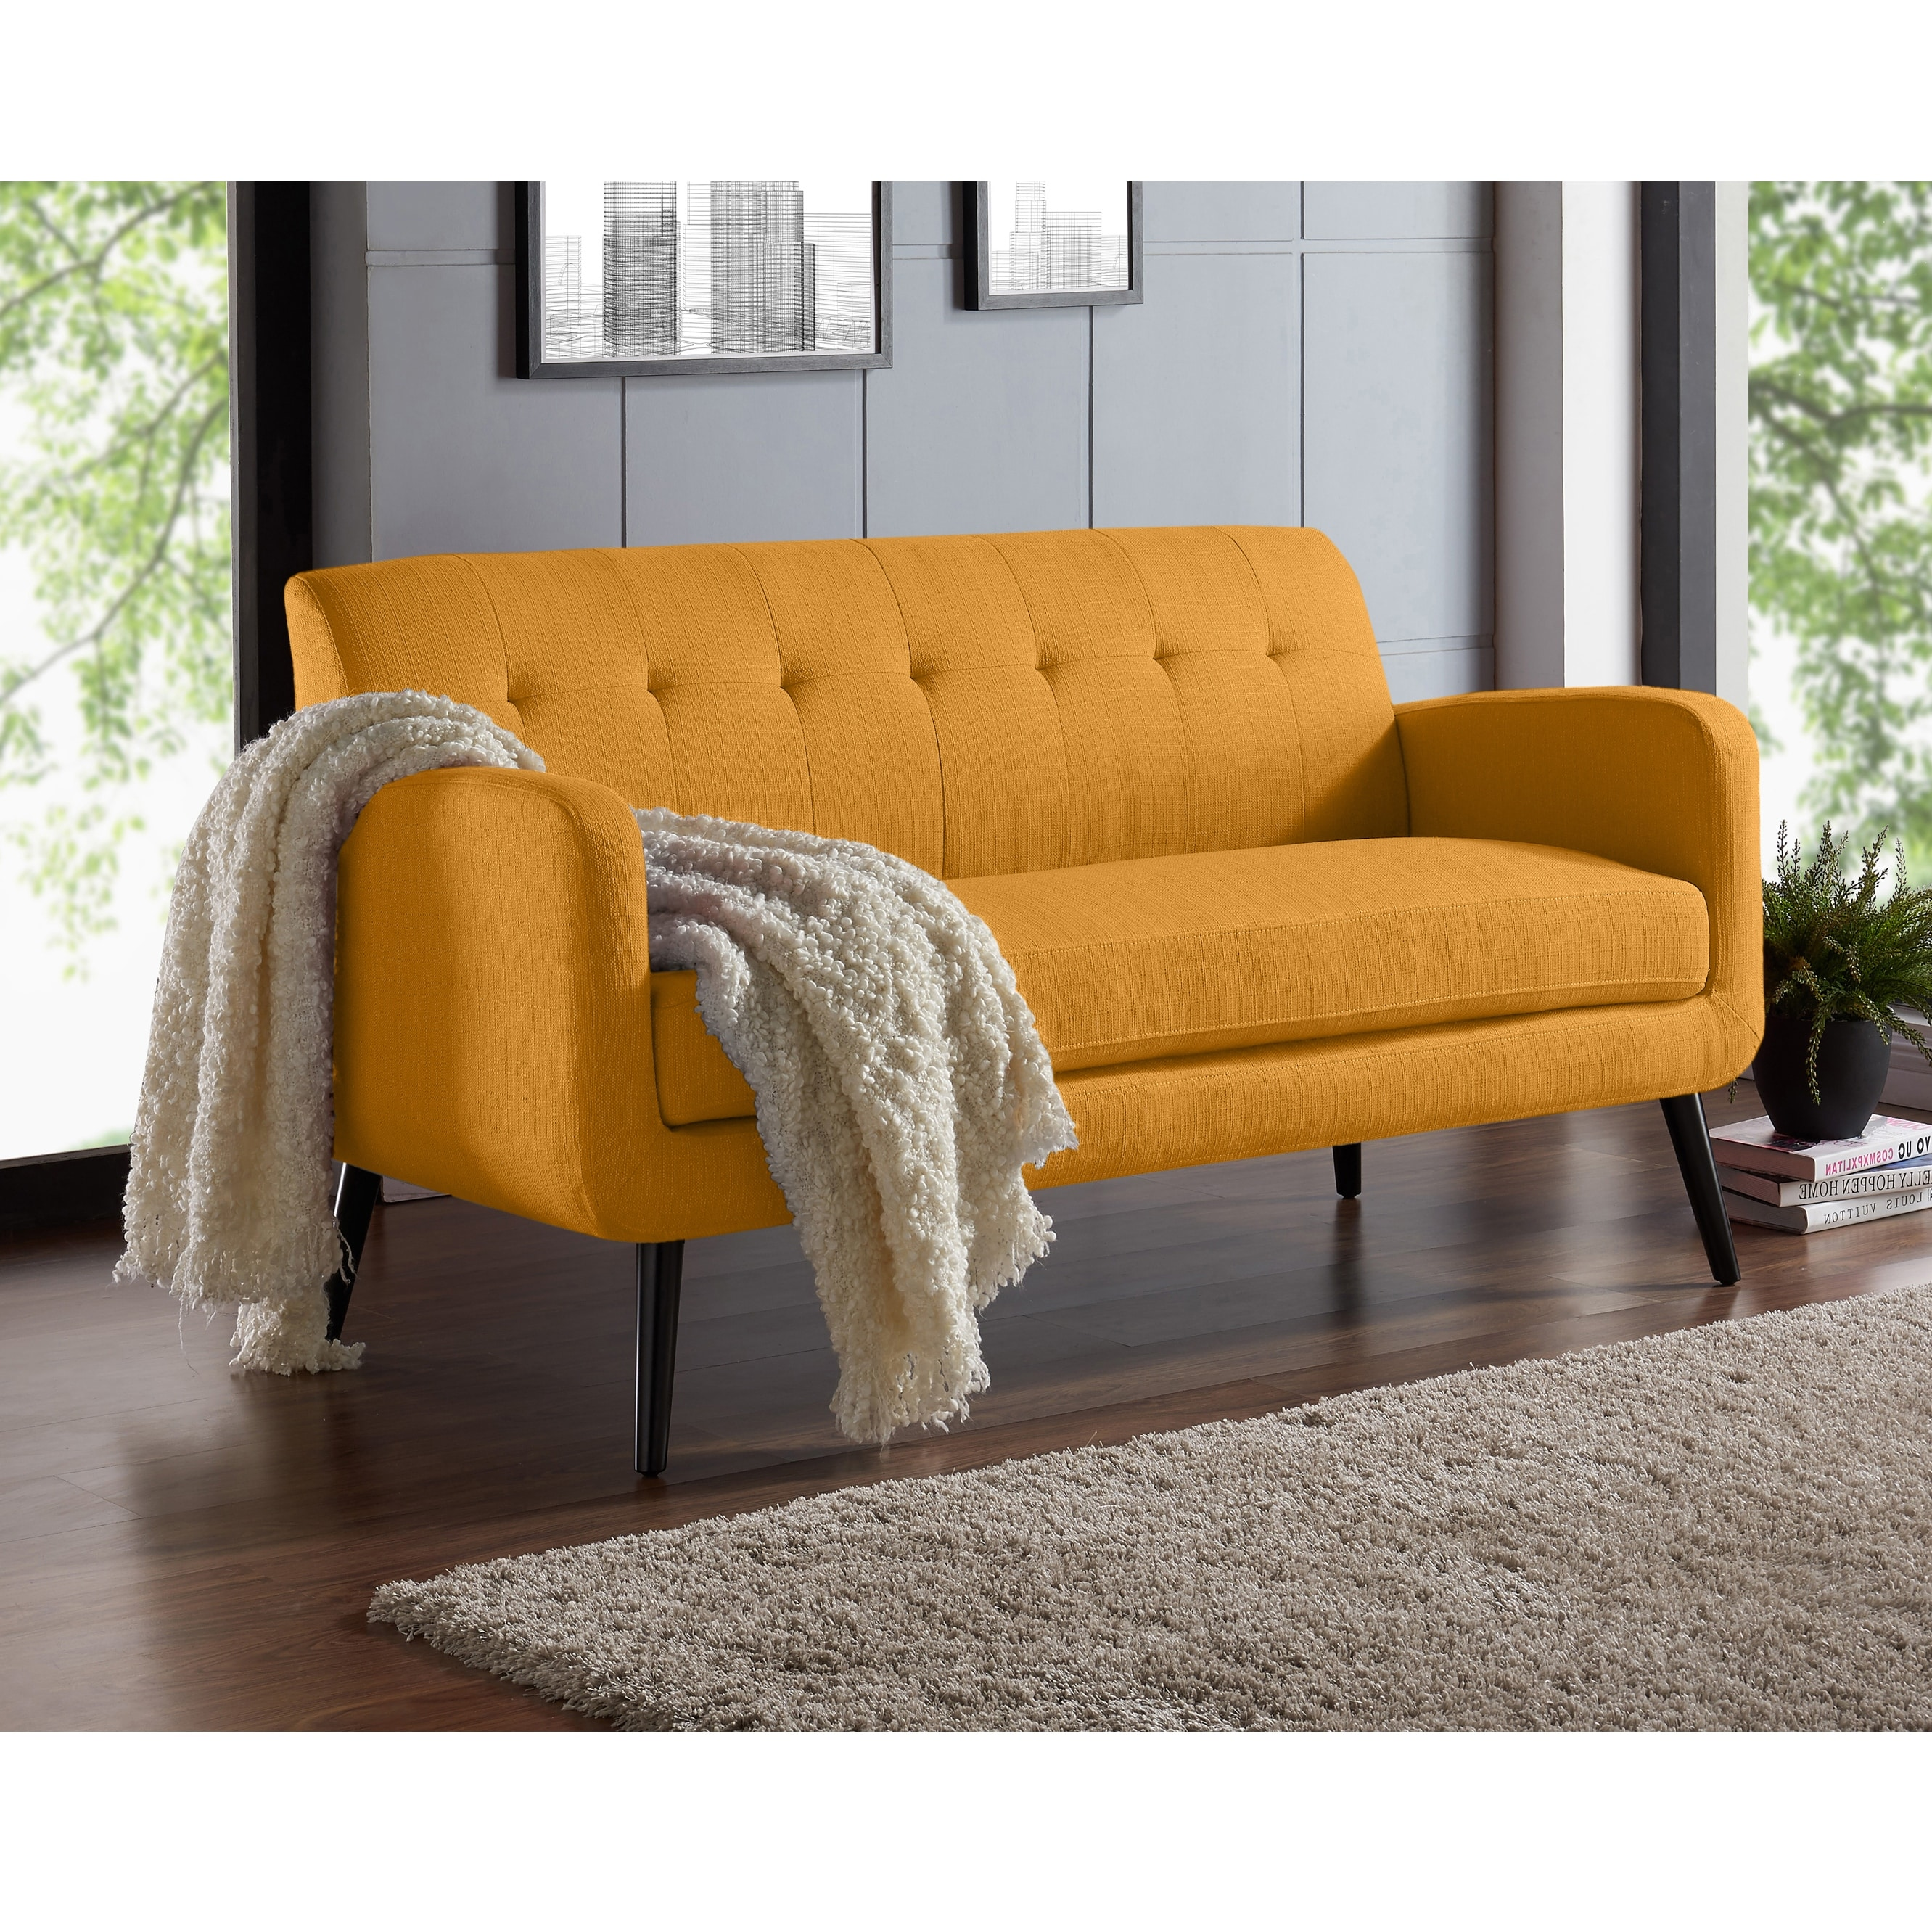 Carson Carrington Tjaereborg Mid Century Modern Linen Sofa On Sale Overstock 23122655 Mustard Yellow